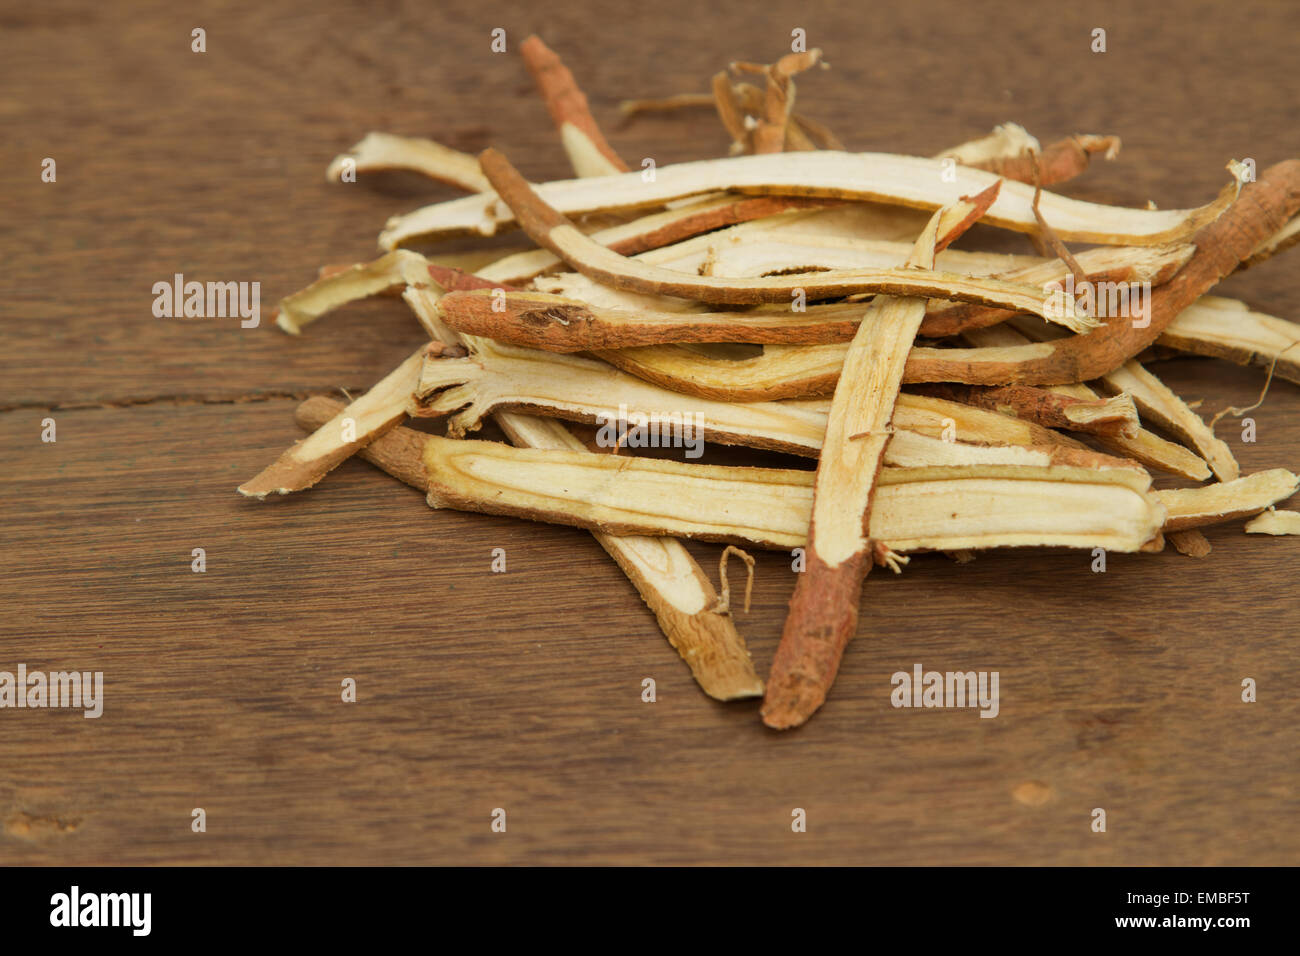 Liquorice root, used in chinese herbal medicine - Stock Image